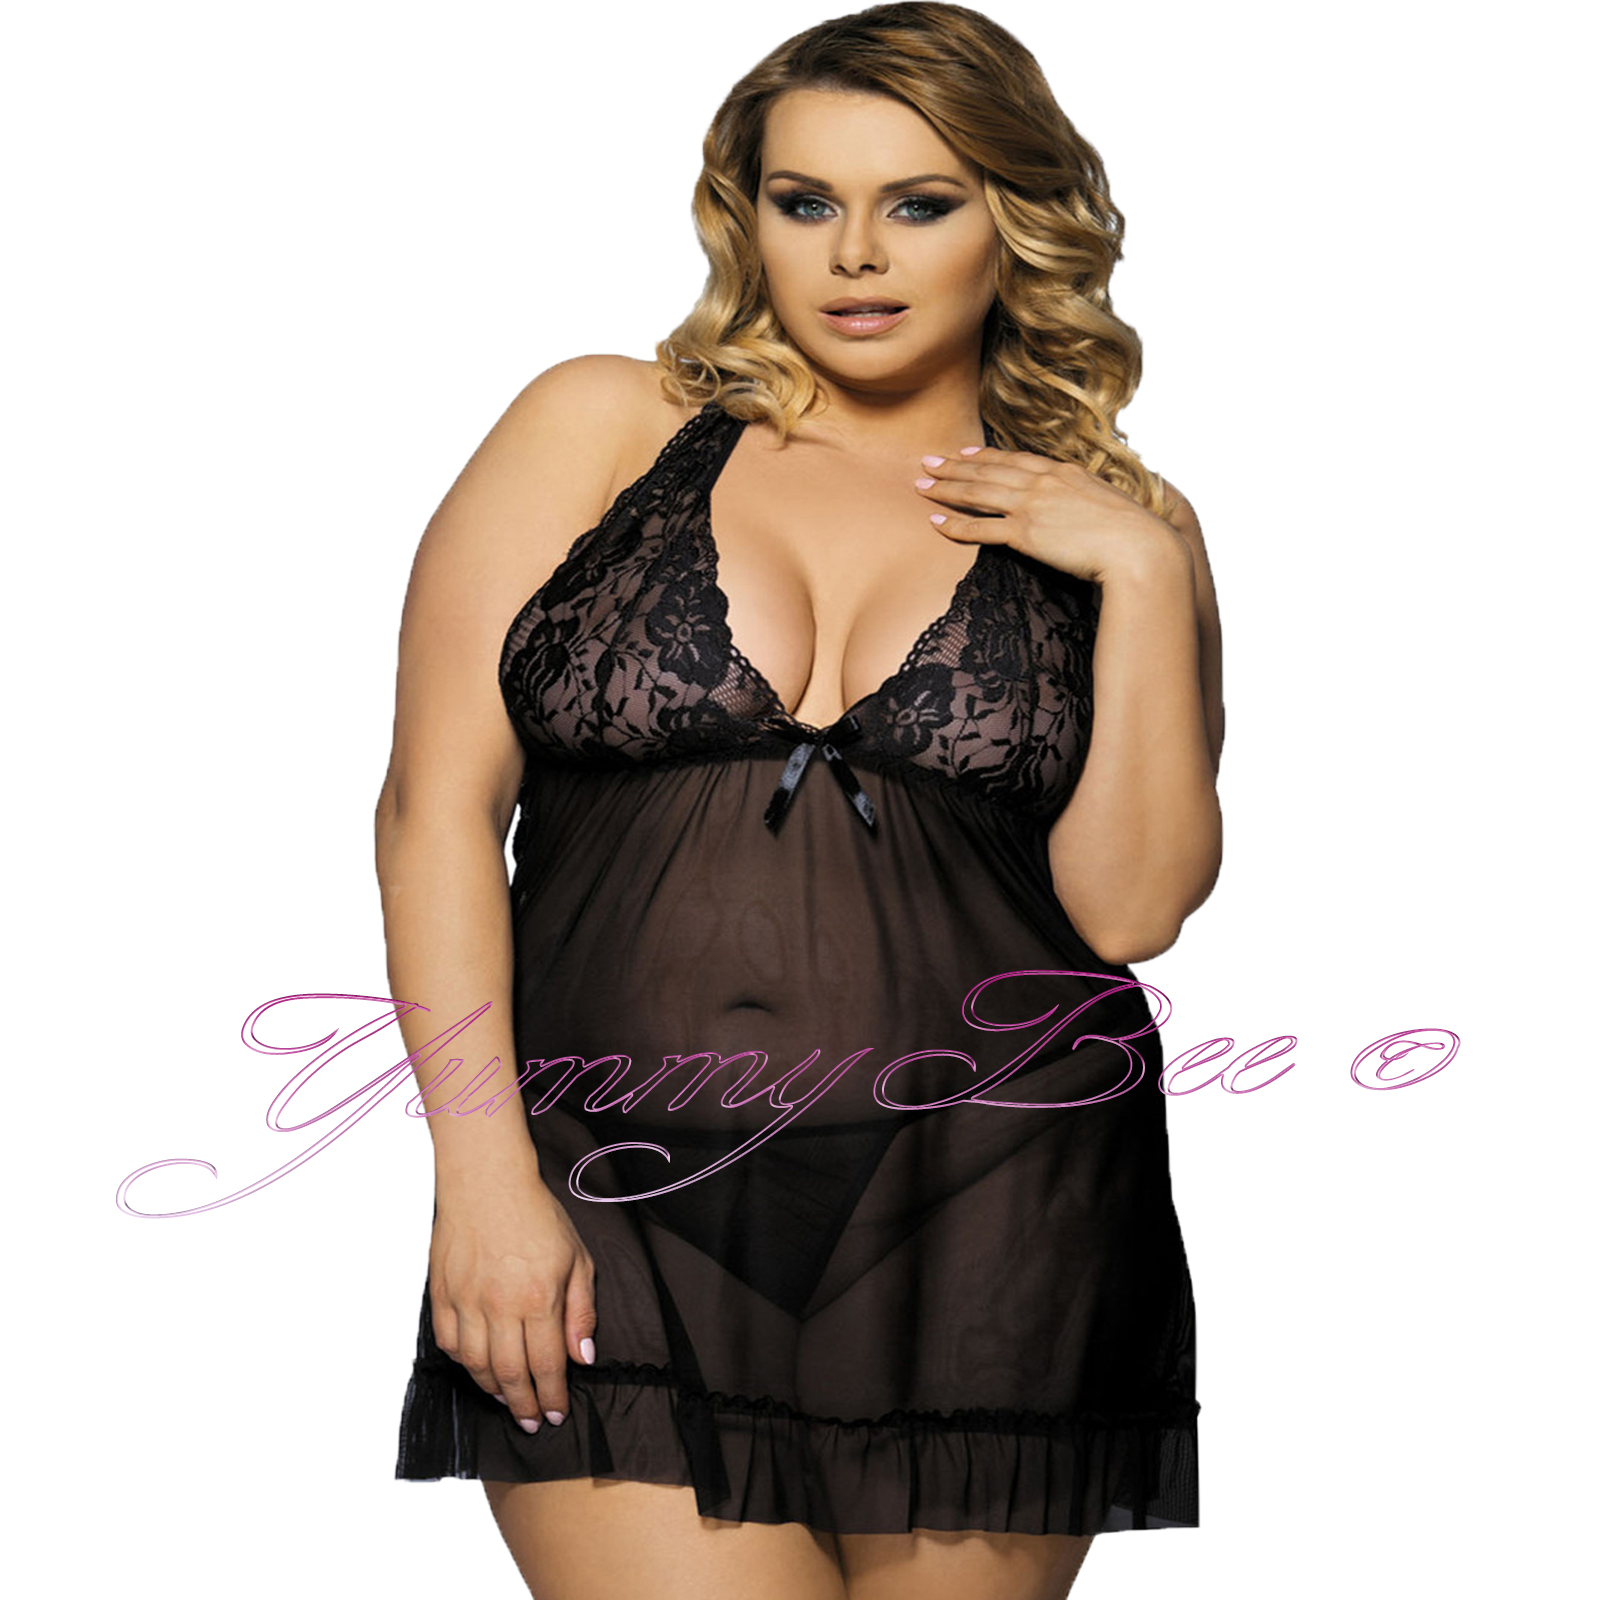 f81685a7645 Yummy Bee Babydoll Negligee Sexy Lingerie Lace Nightwear Dress Plus ...